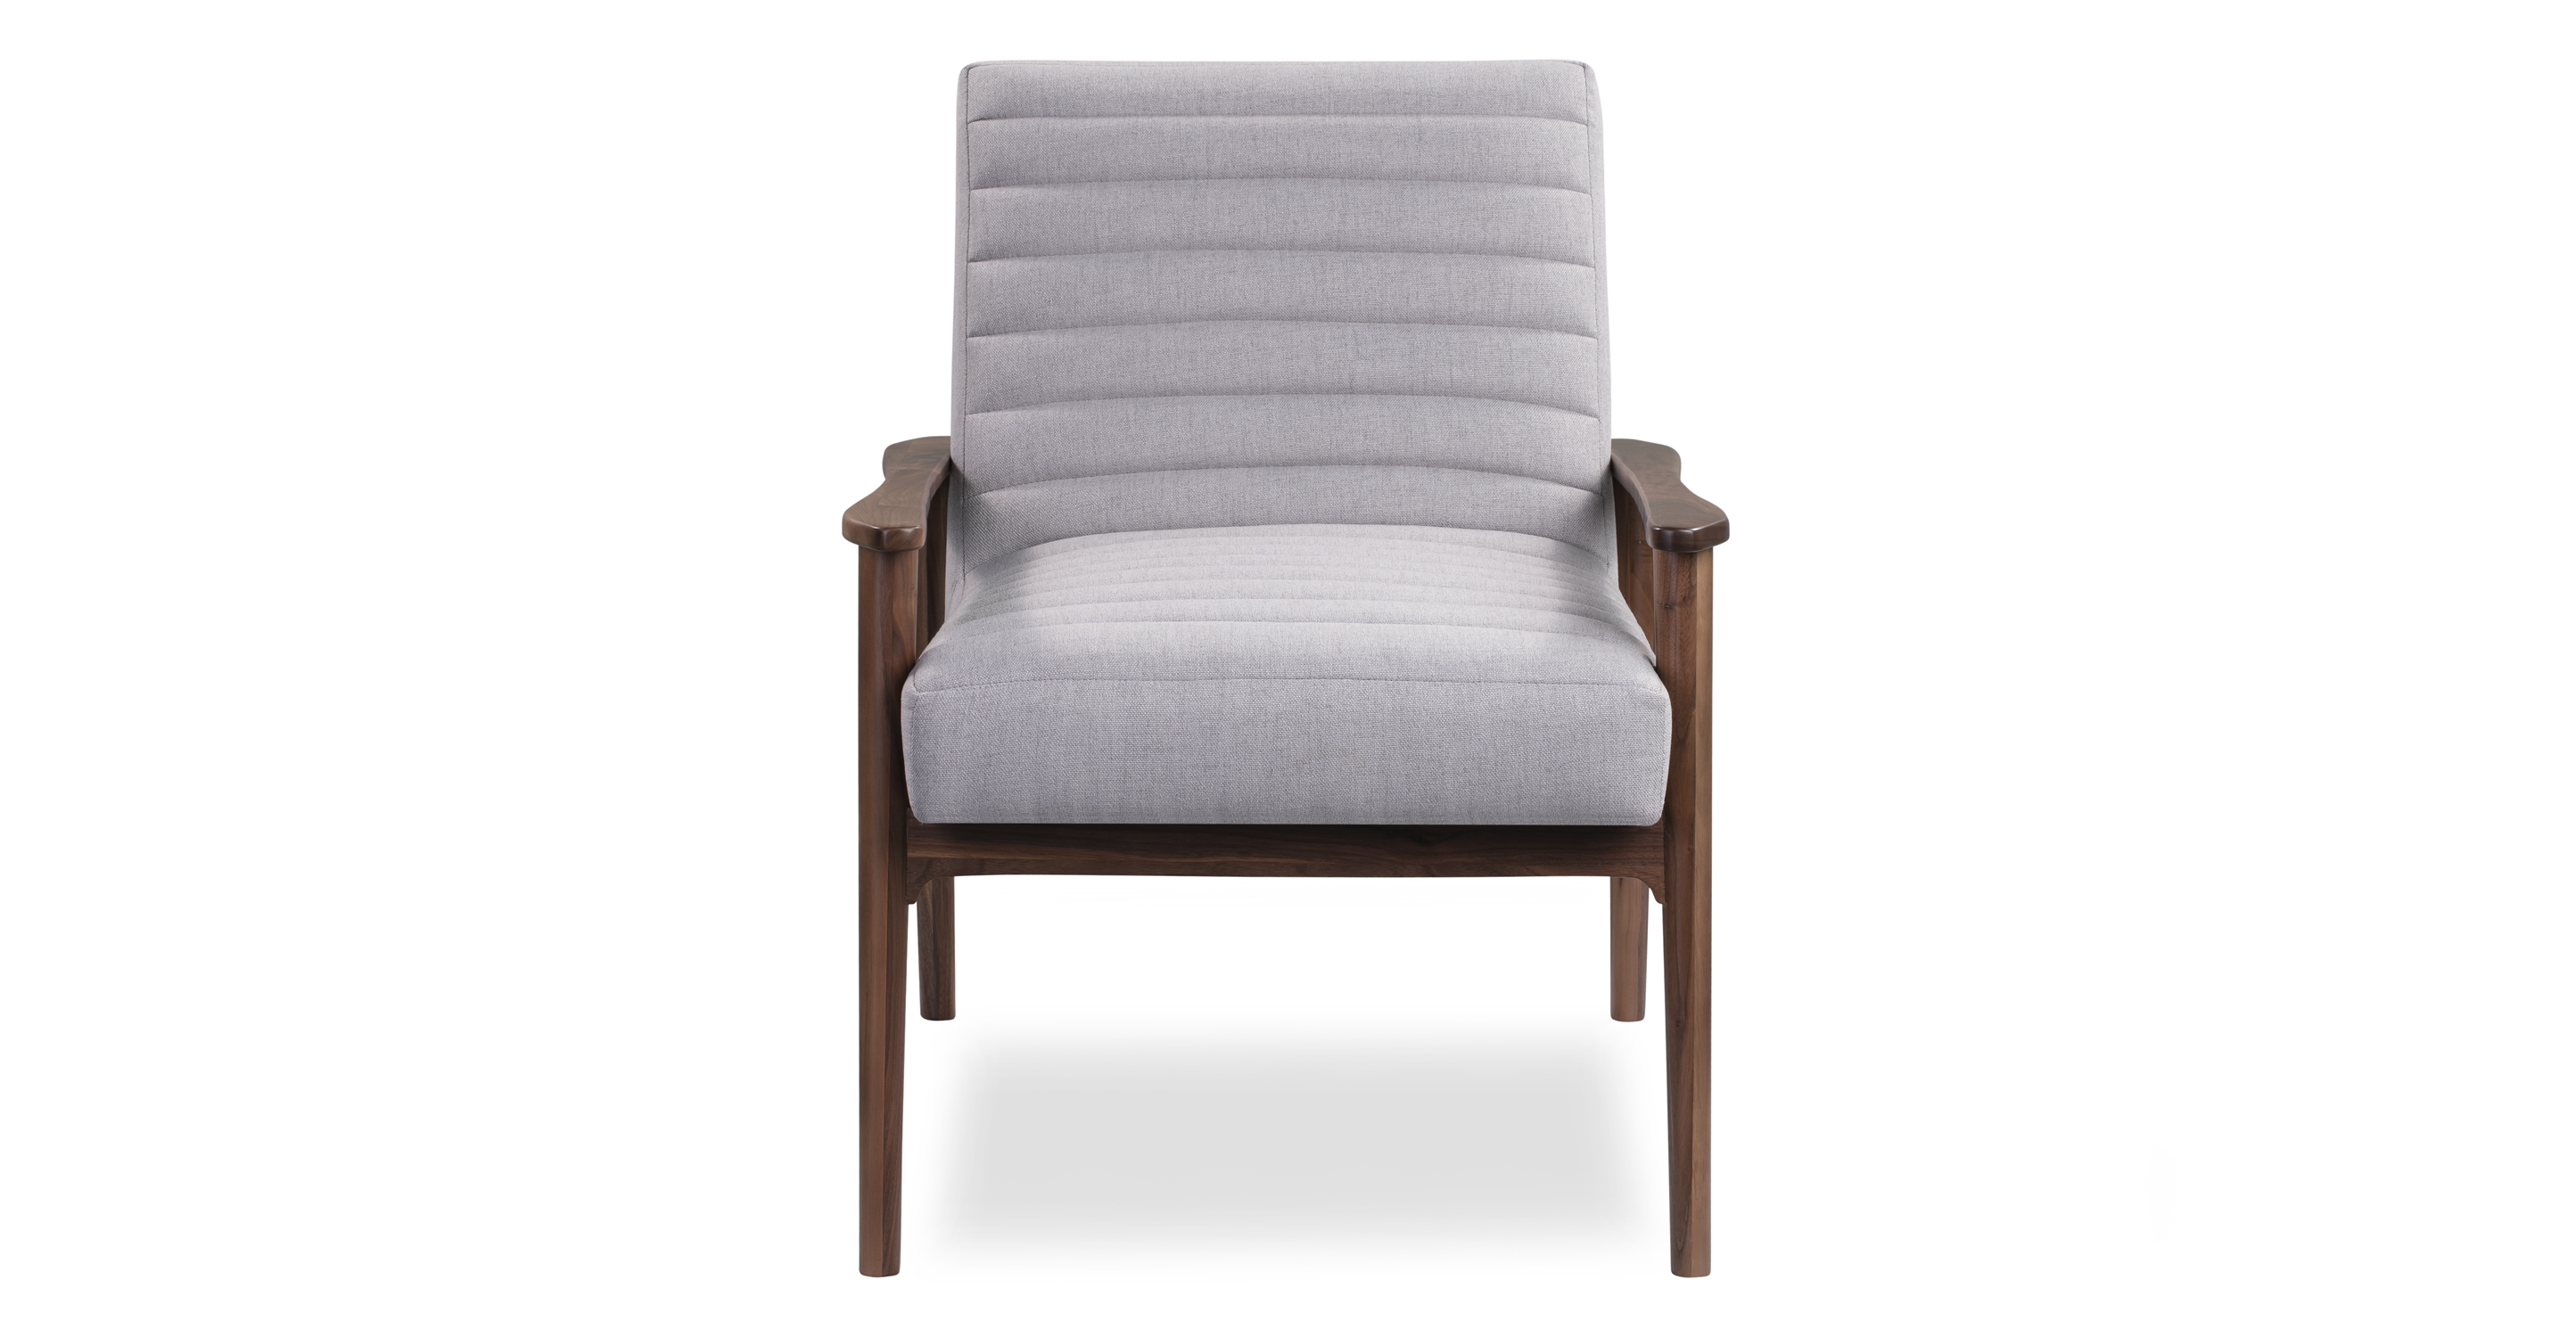 "Mies 26"" Fabric Chair, Walnut/Mist"